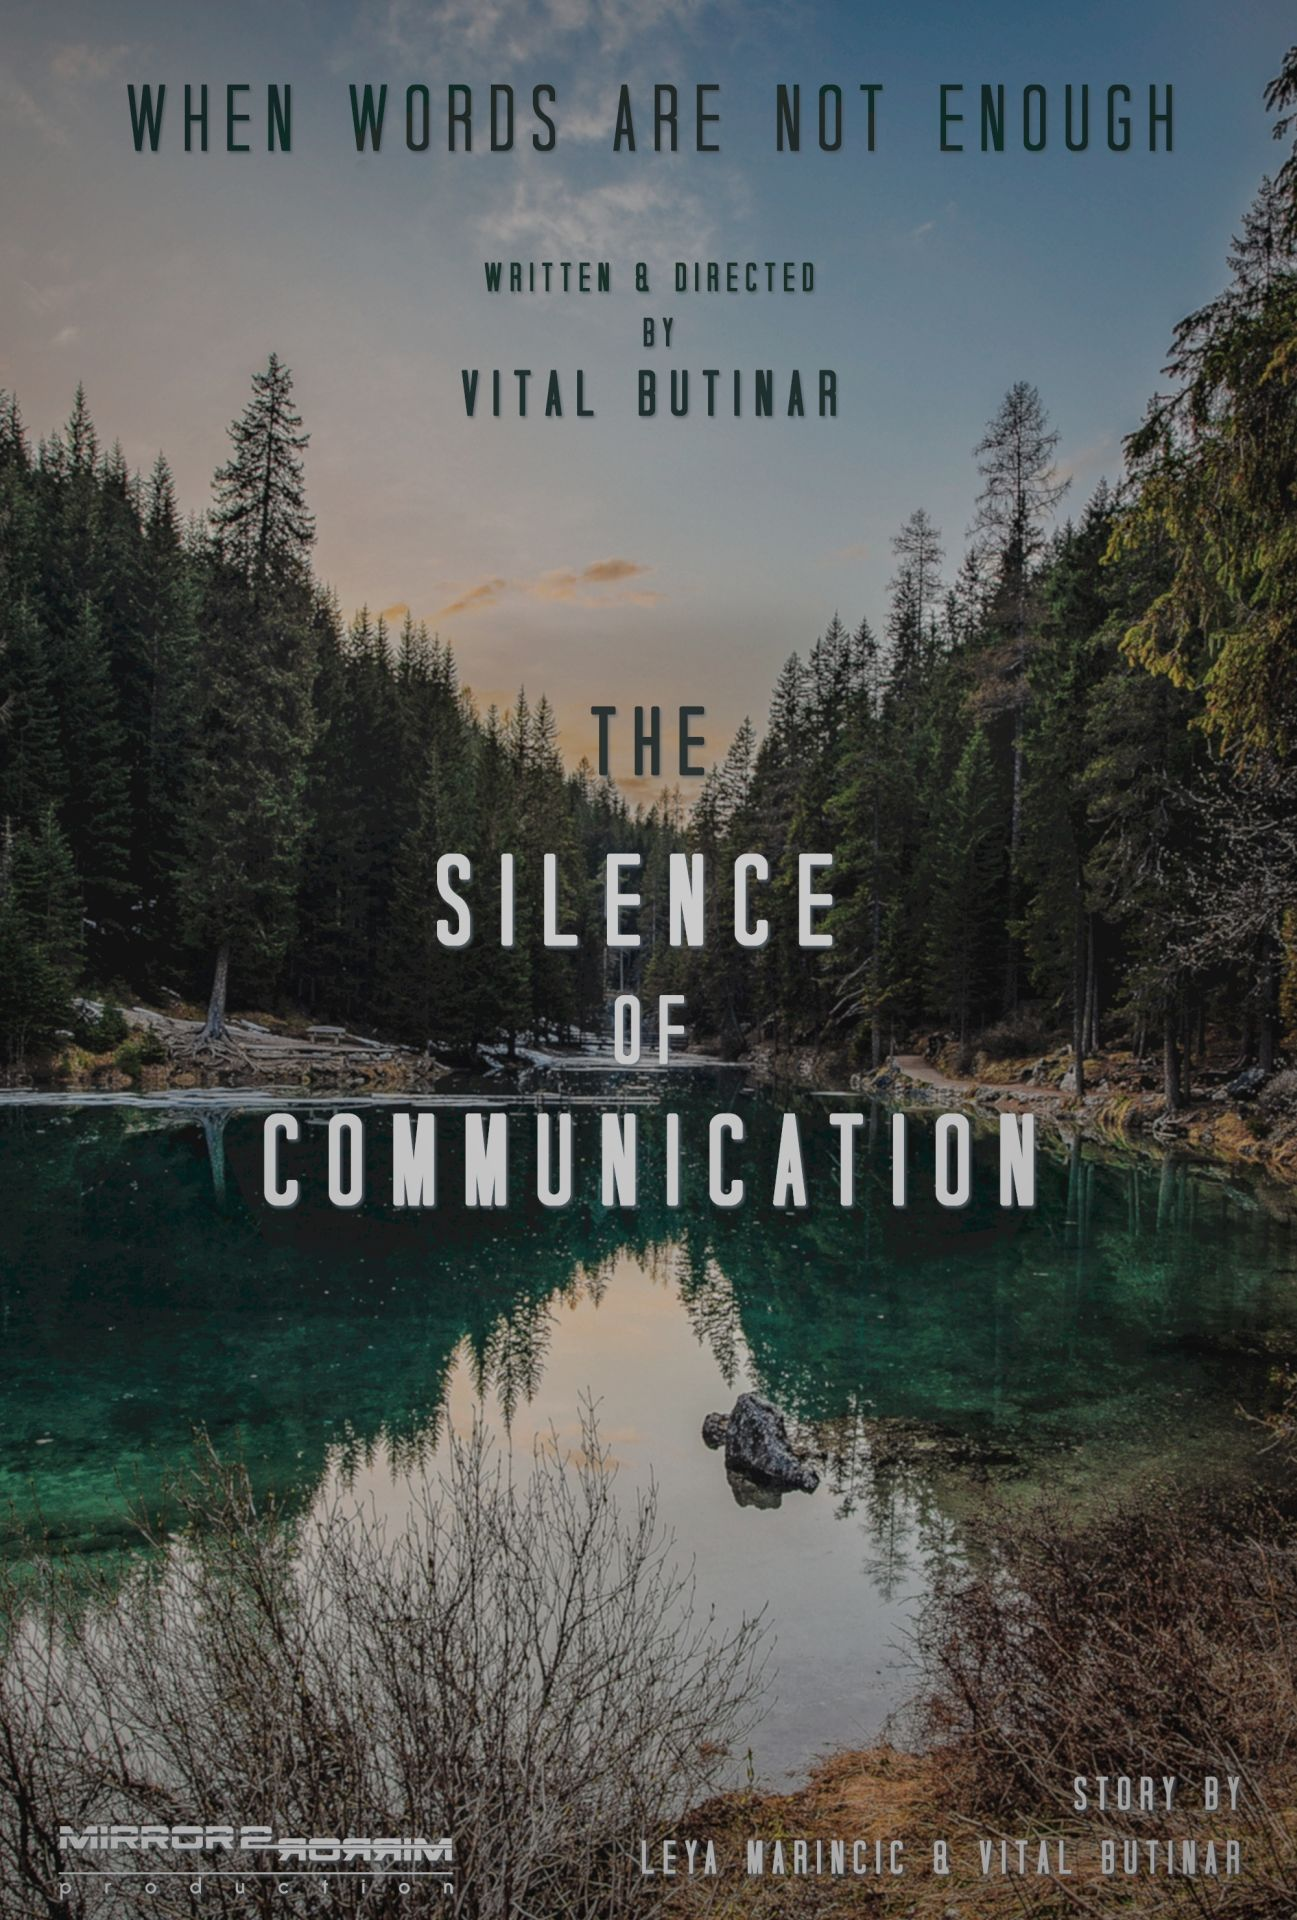 THE SILENCE OF COMMUNICATION - WHEN WORDS ARE NOT ENOUGH